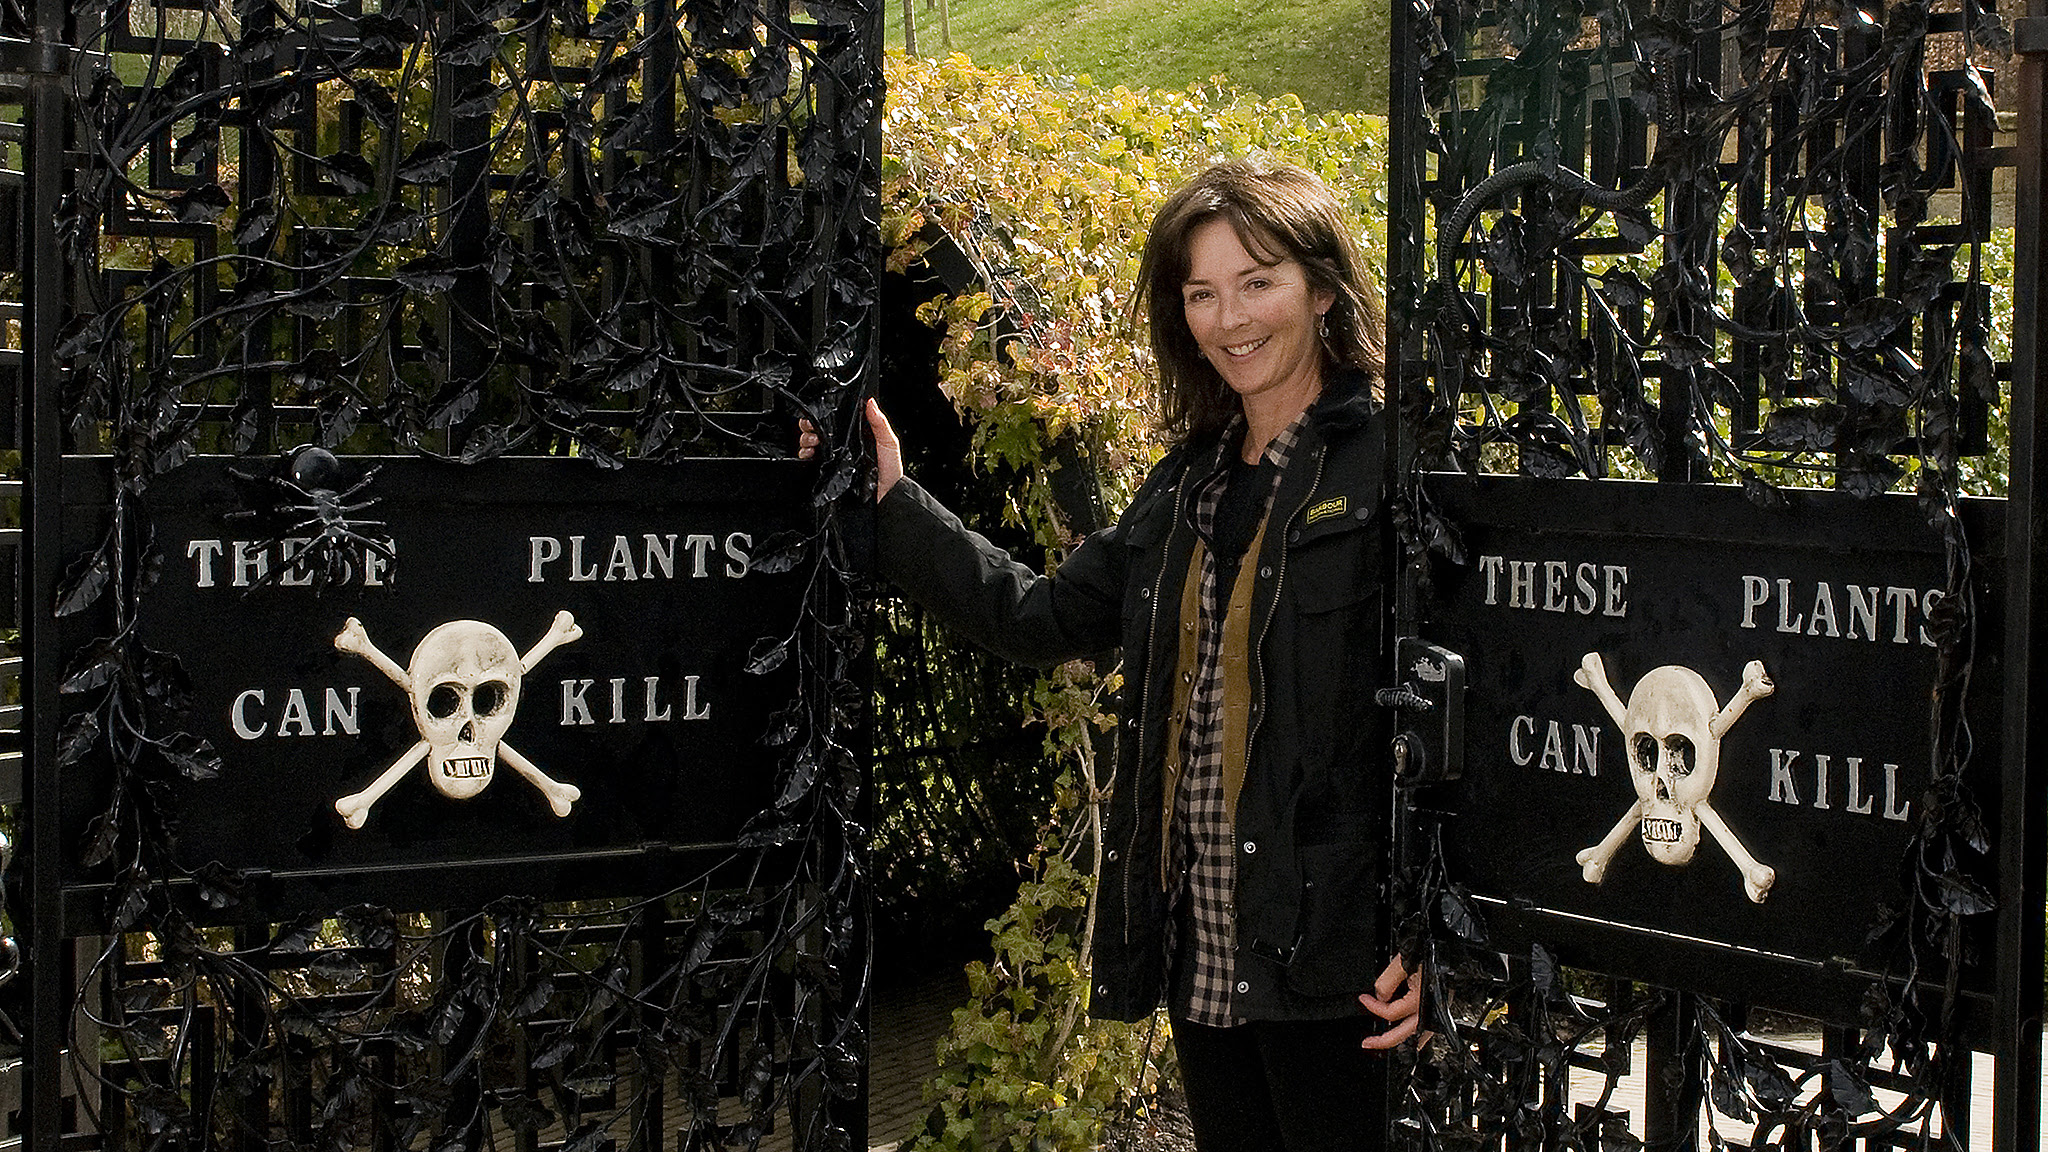 Sowing For The Grim Reaper A Garden Of Deadly Plants Financial Times